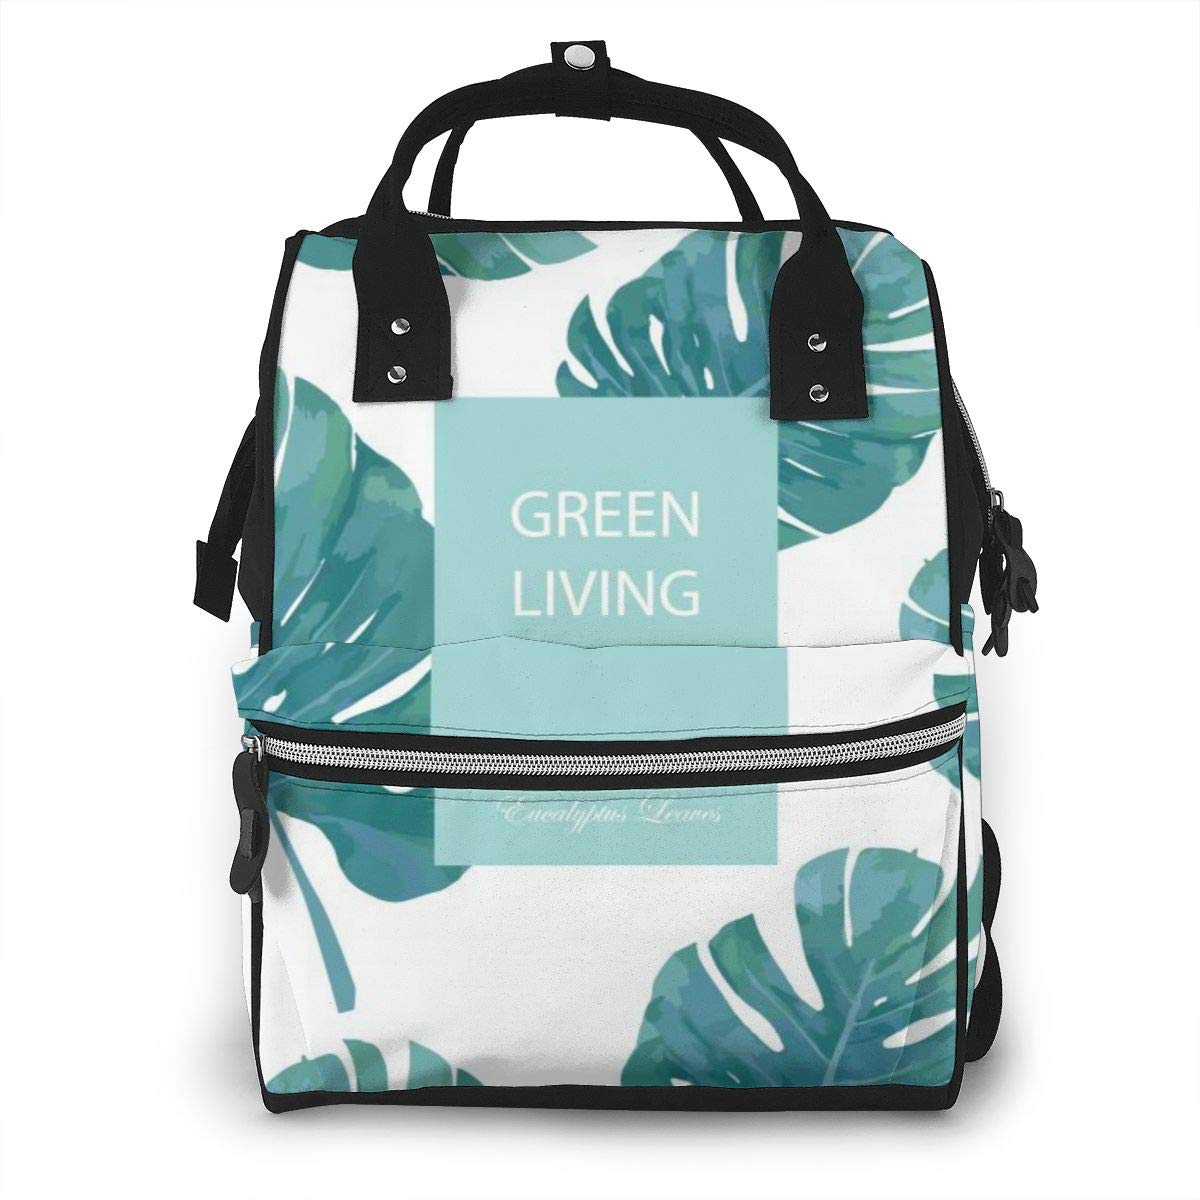 Tropic Green Fashion Large Capacity Diaper Nappy Travel Nursing Bag Mummy Mom Backpack Laptop Multi-Function for Baby Care Women Family